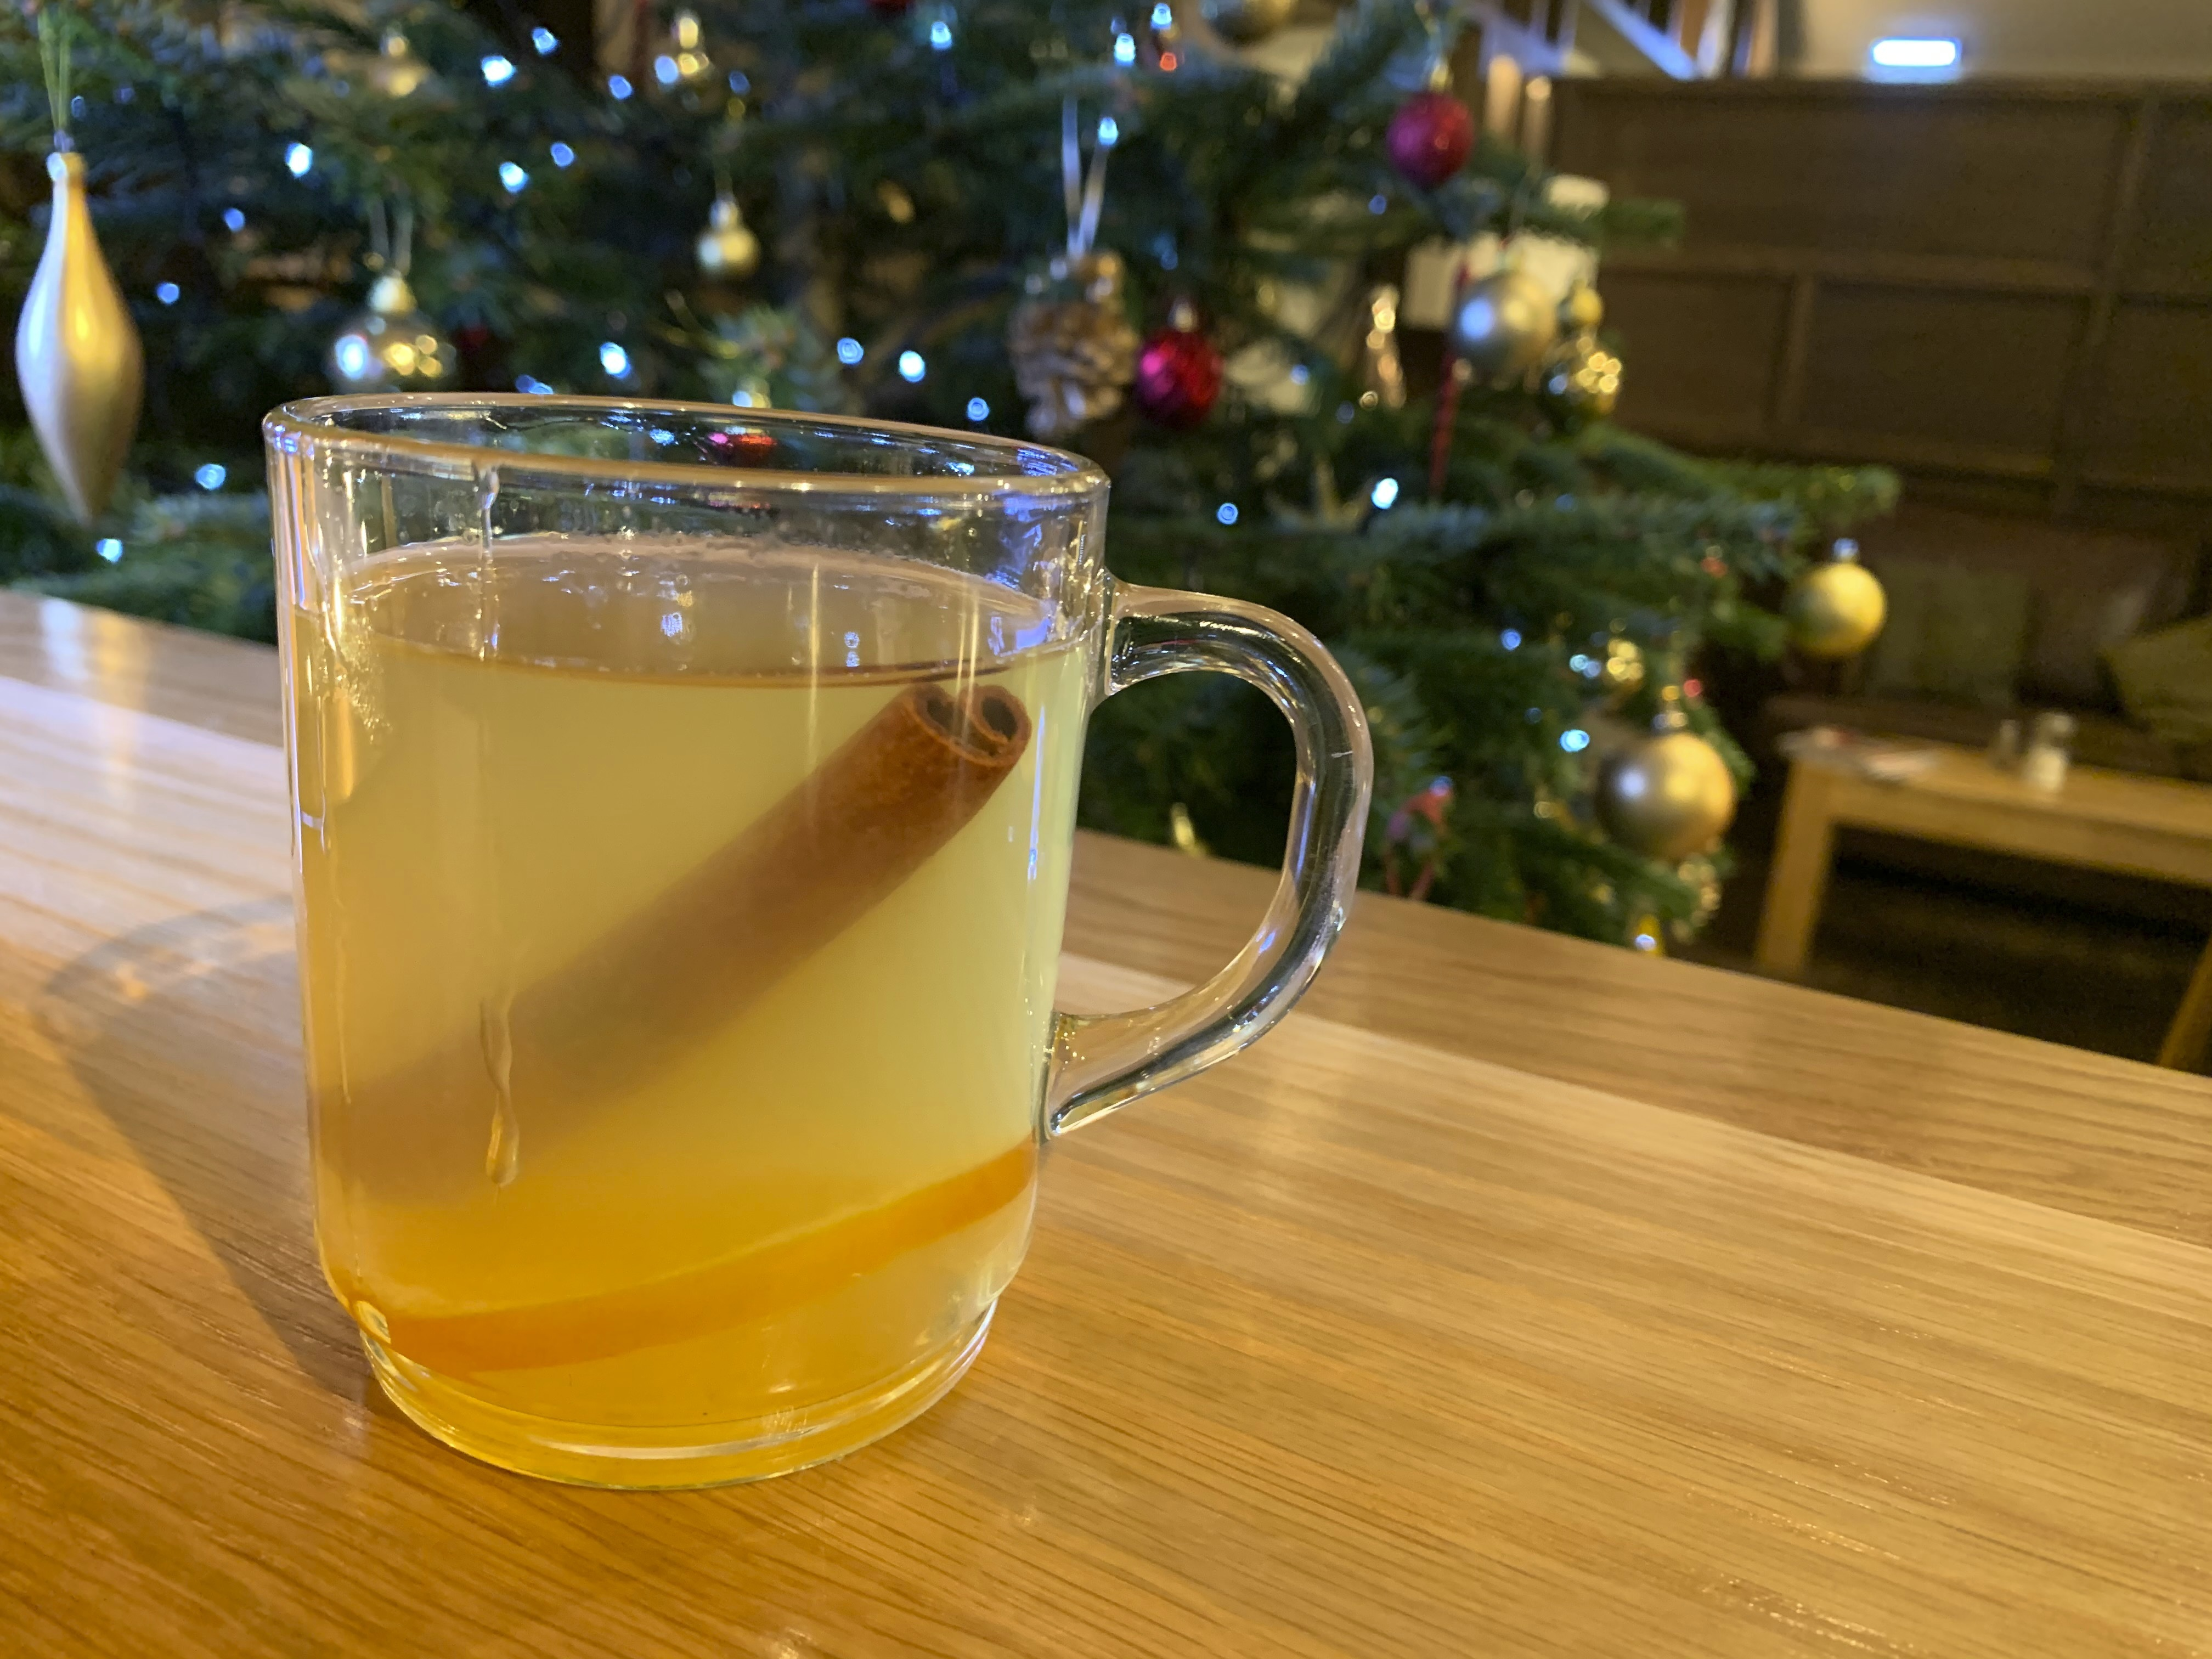 A traditional hot toddy is displayed at the Dewar's Aberfeldy in London. While mulled wine, warm spiced cider and hot toddies have long been British staples during winter, many cocktail bars in London offer their own seasonal winter warmers.